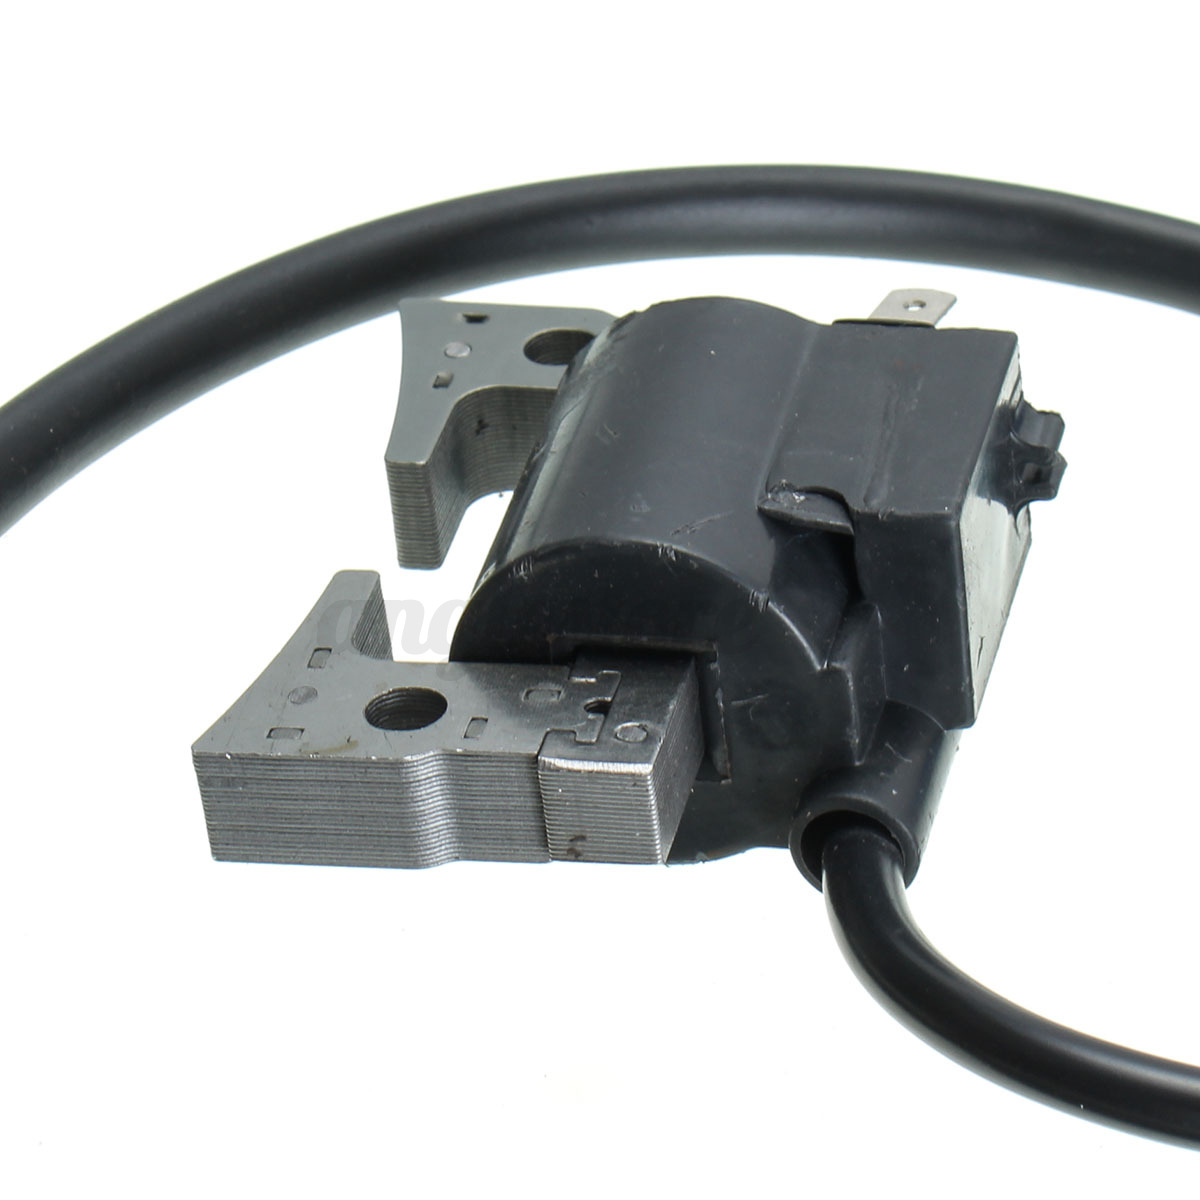 Ignition Coil Golf: Car Part Ignition Coil And Ignitor Gas Fit Club Golf Cart